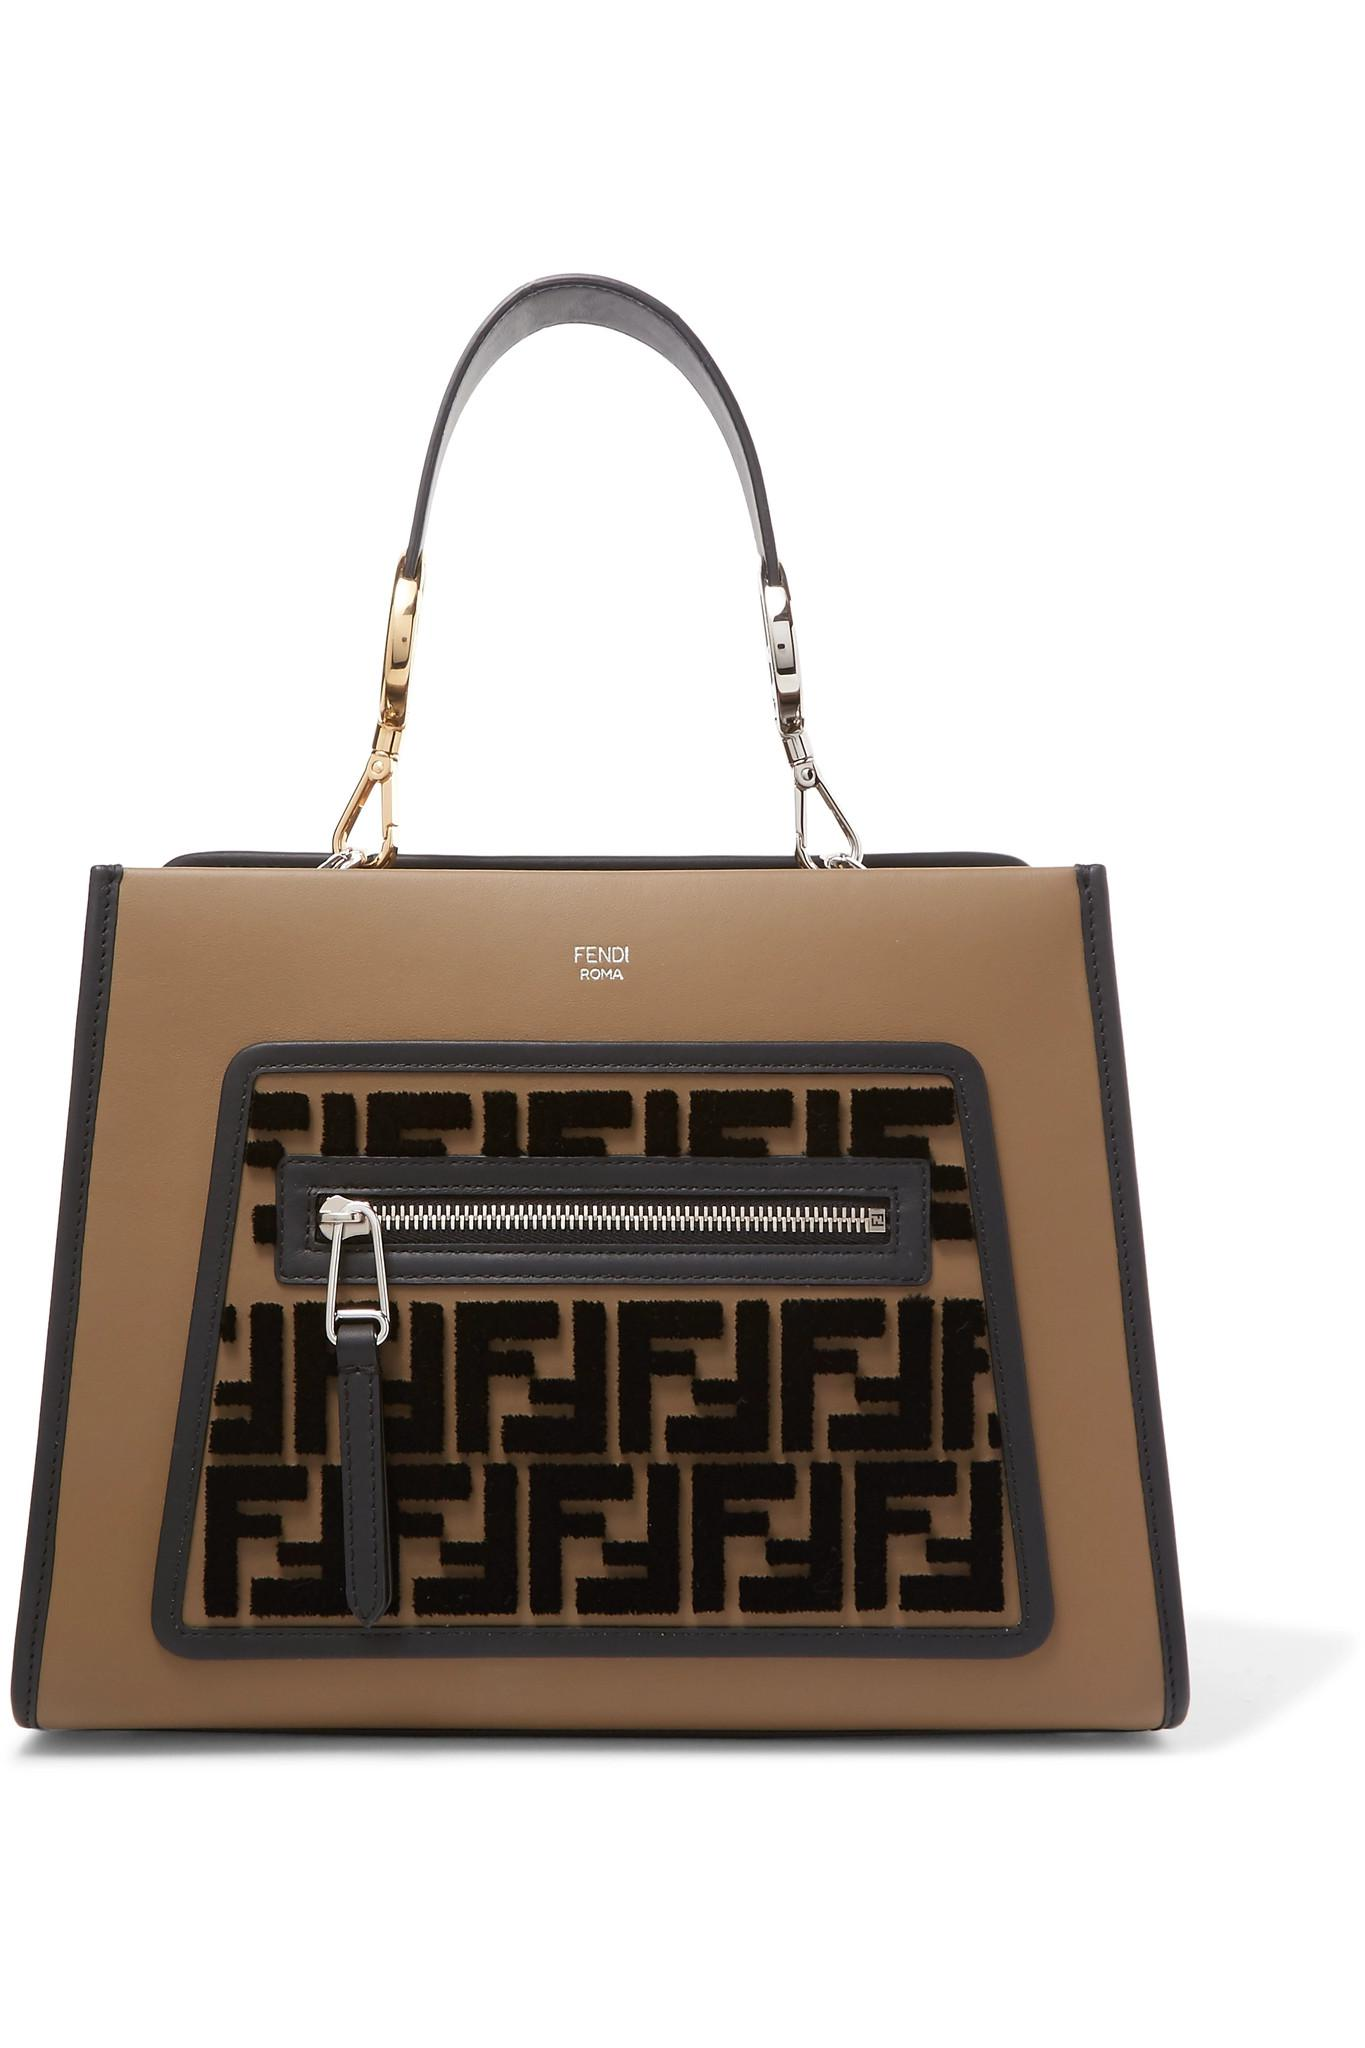 06a2243f23f0 Fendi Runaway Small Flocked Leather Tote in Brown - Lyst